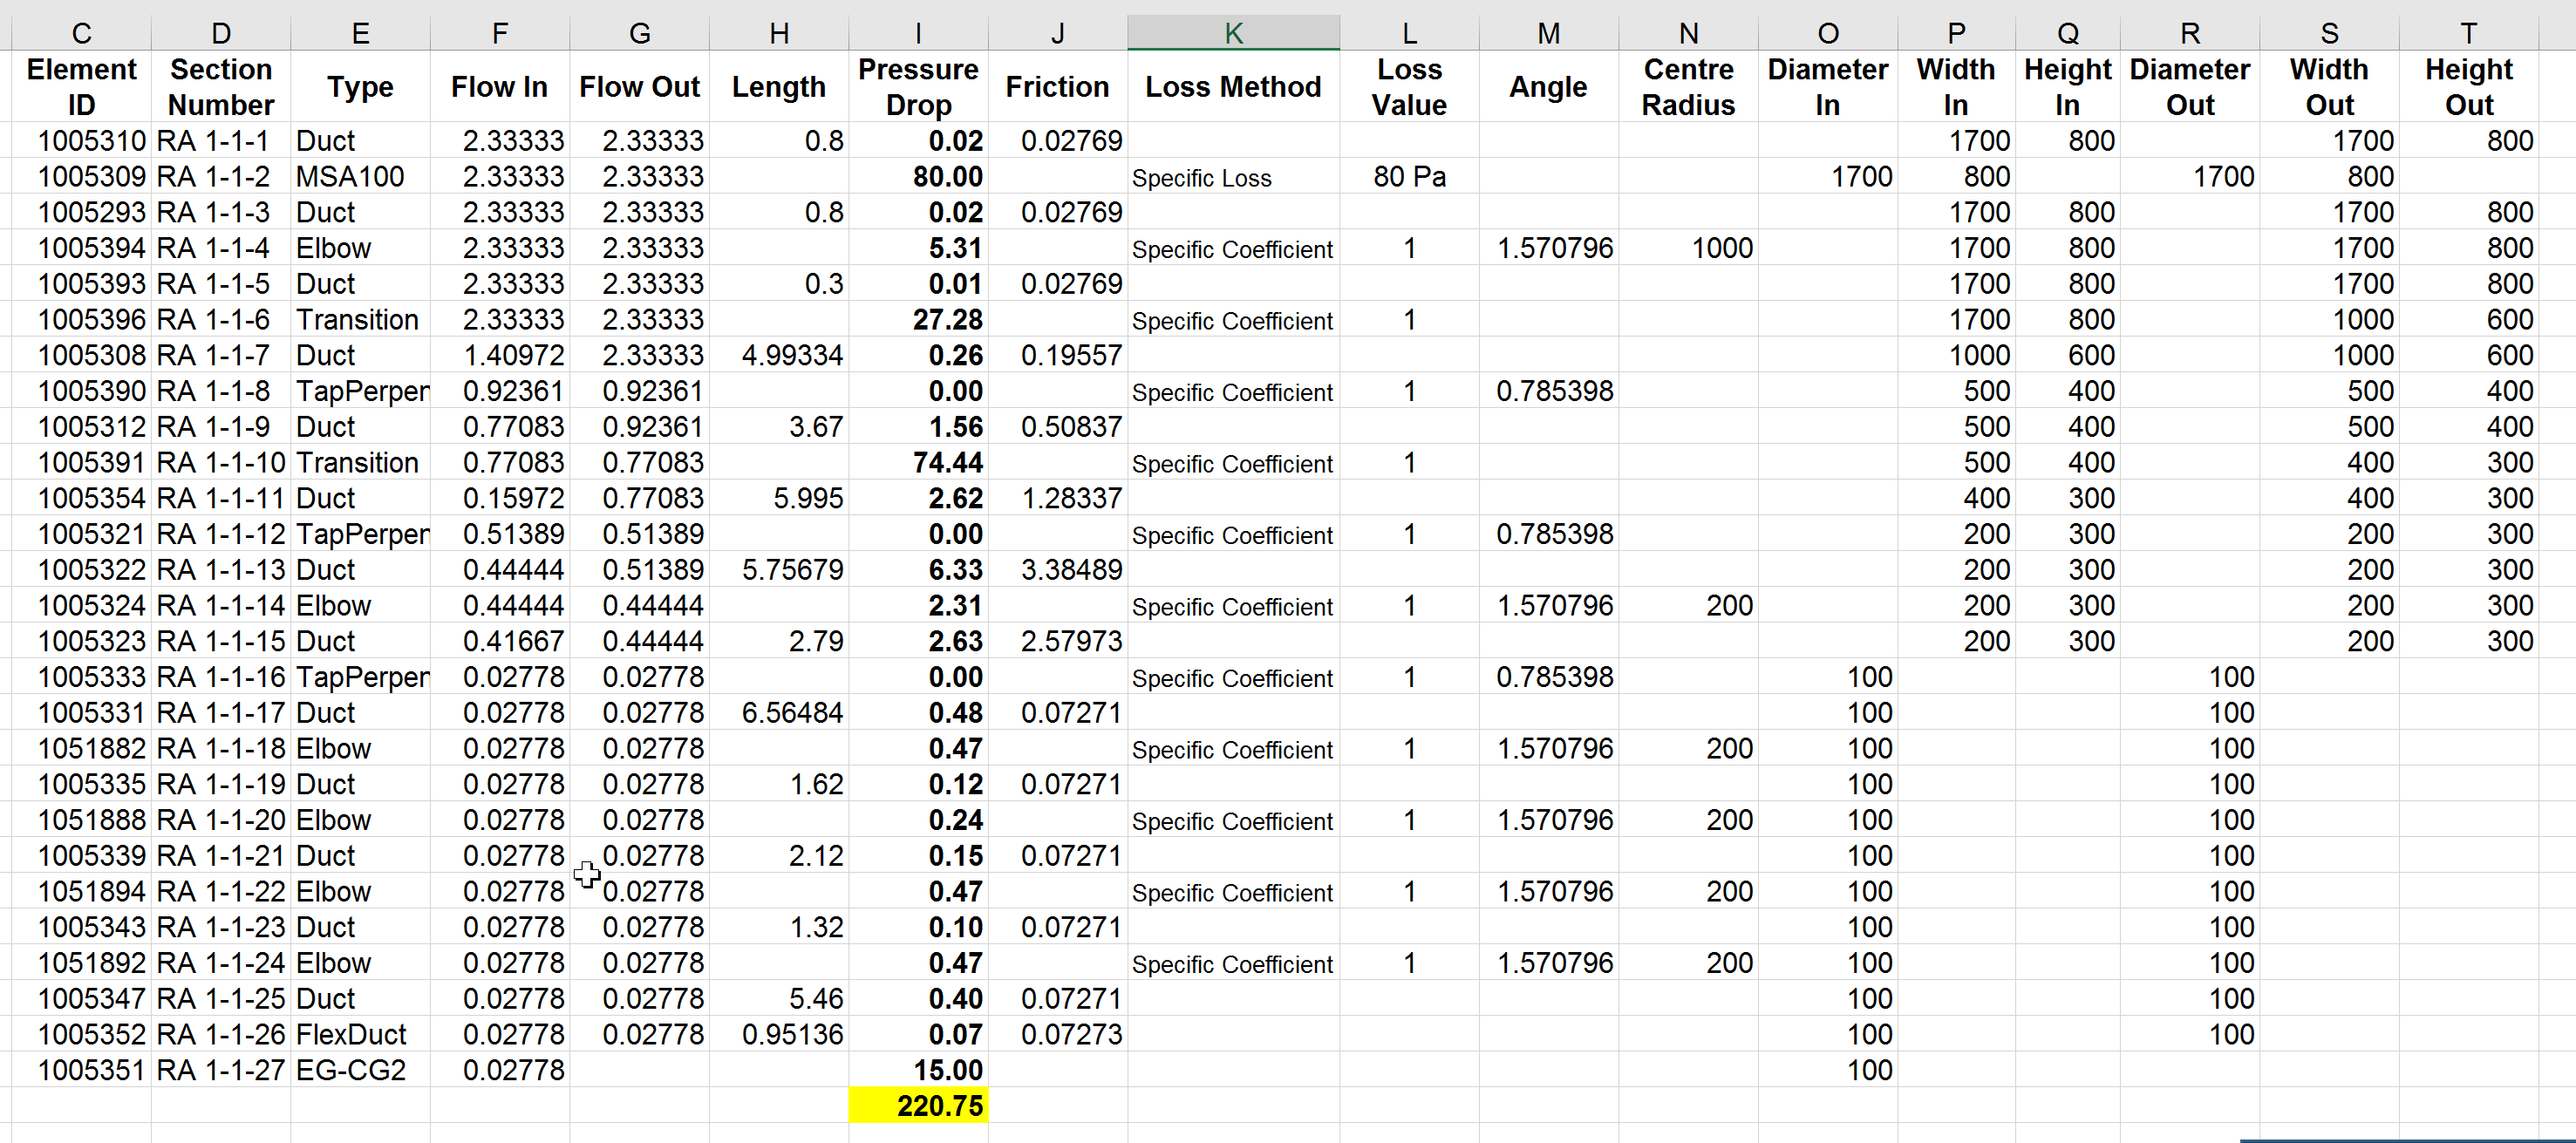 Allow to Schedule Loss method, Loss Method Setting, and